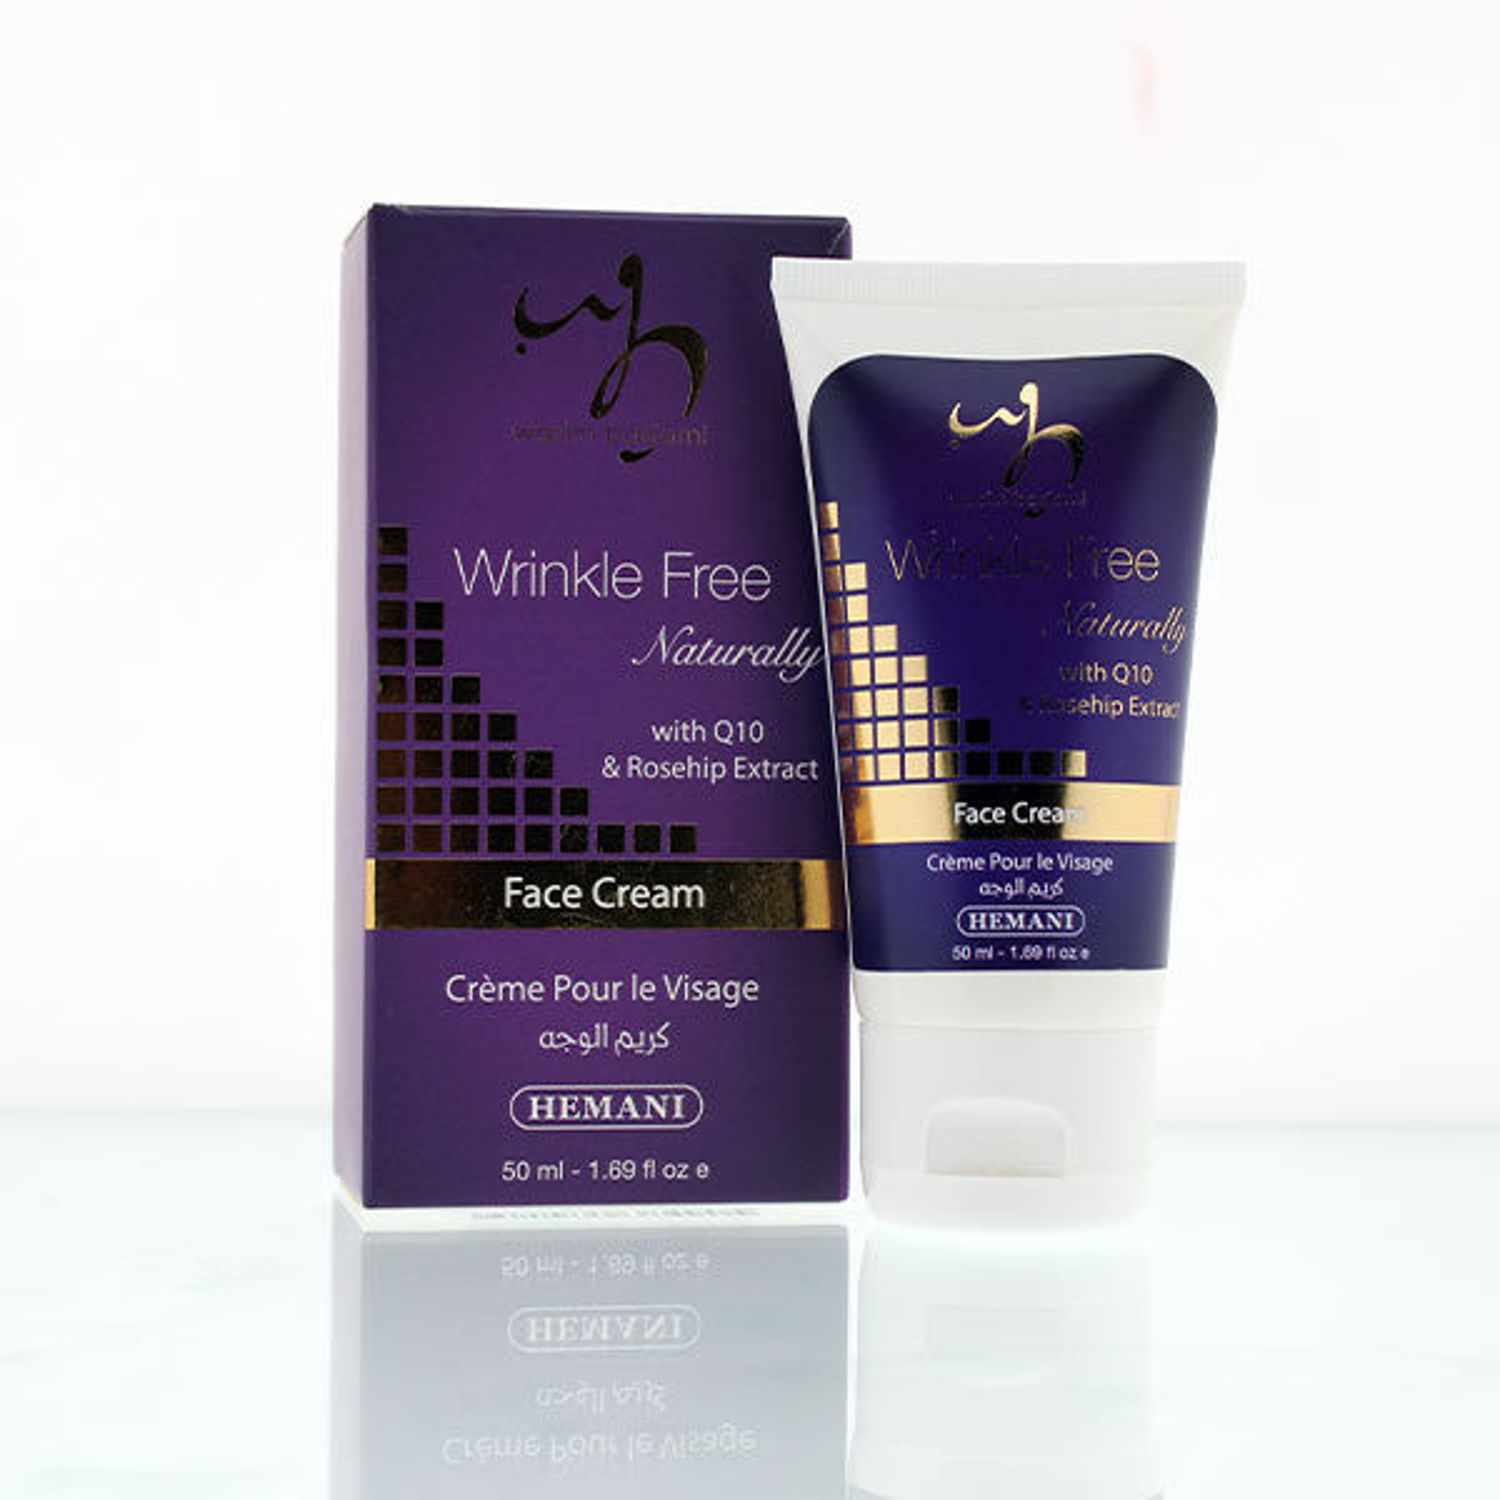 Wrinkle Free Naturally Face Cream With Q10 & Rosehip Extract